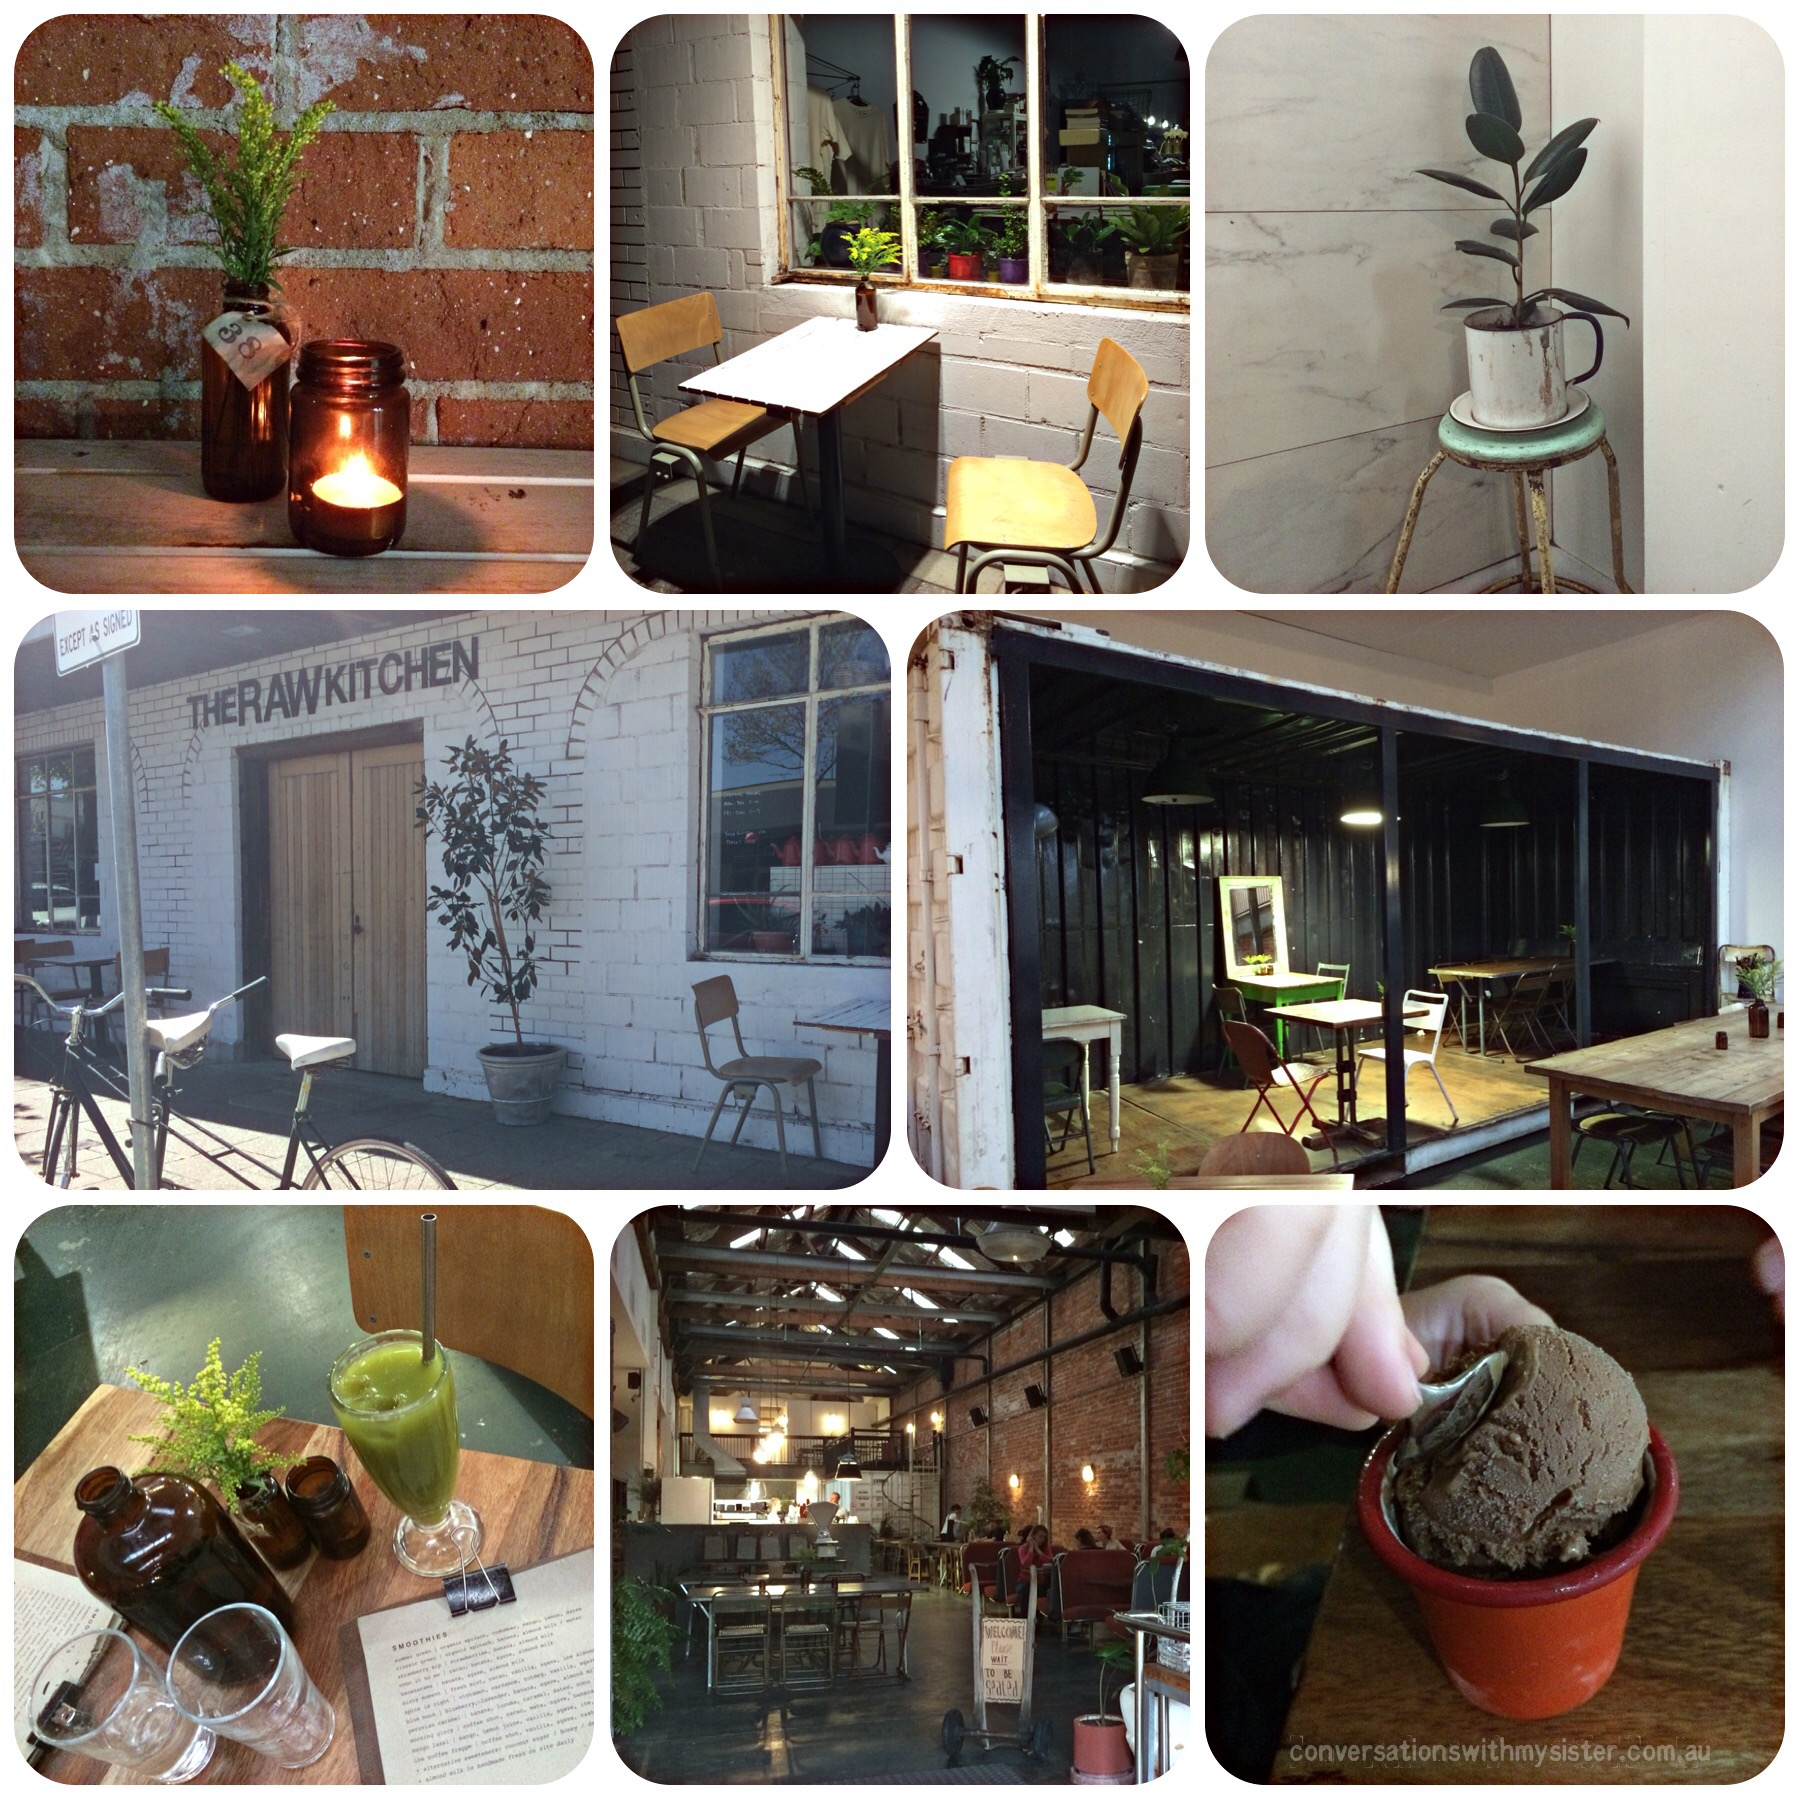 conversationswithmysister_The Raw Kitchen Fremantle